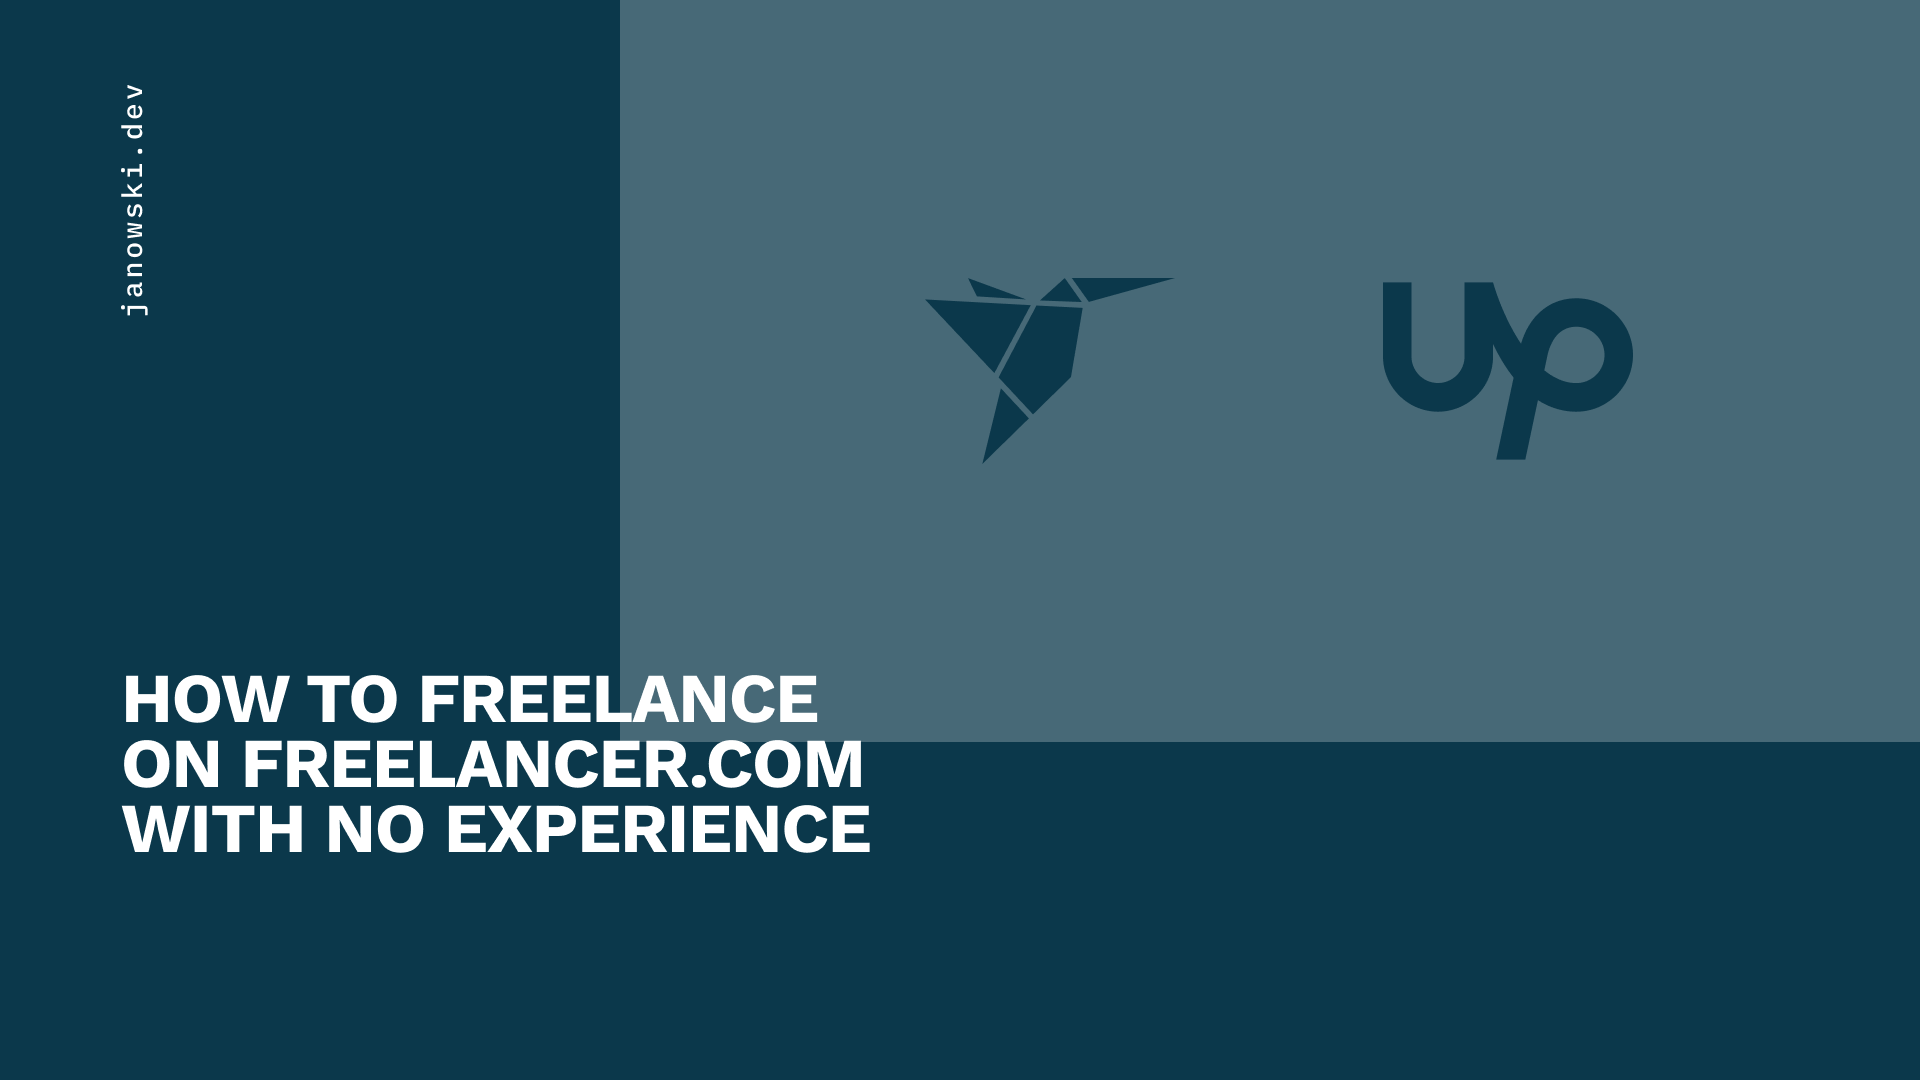 How to Freelance on Freelancer.com with no experience